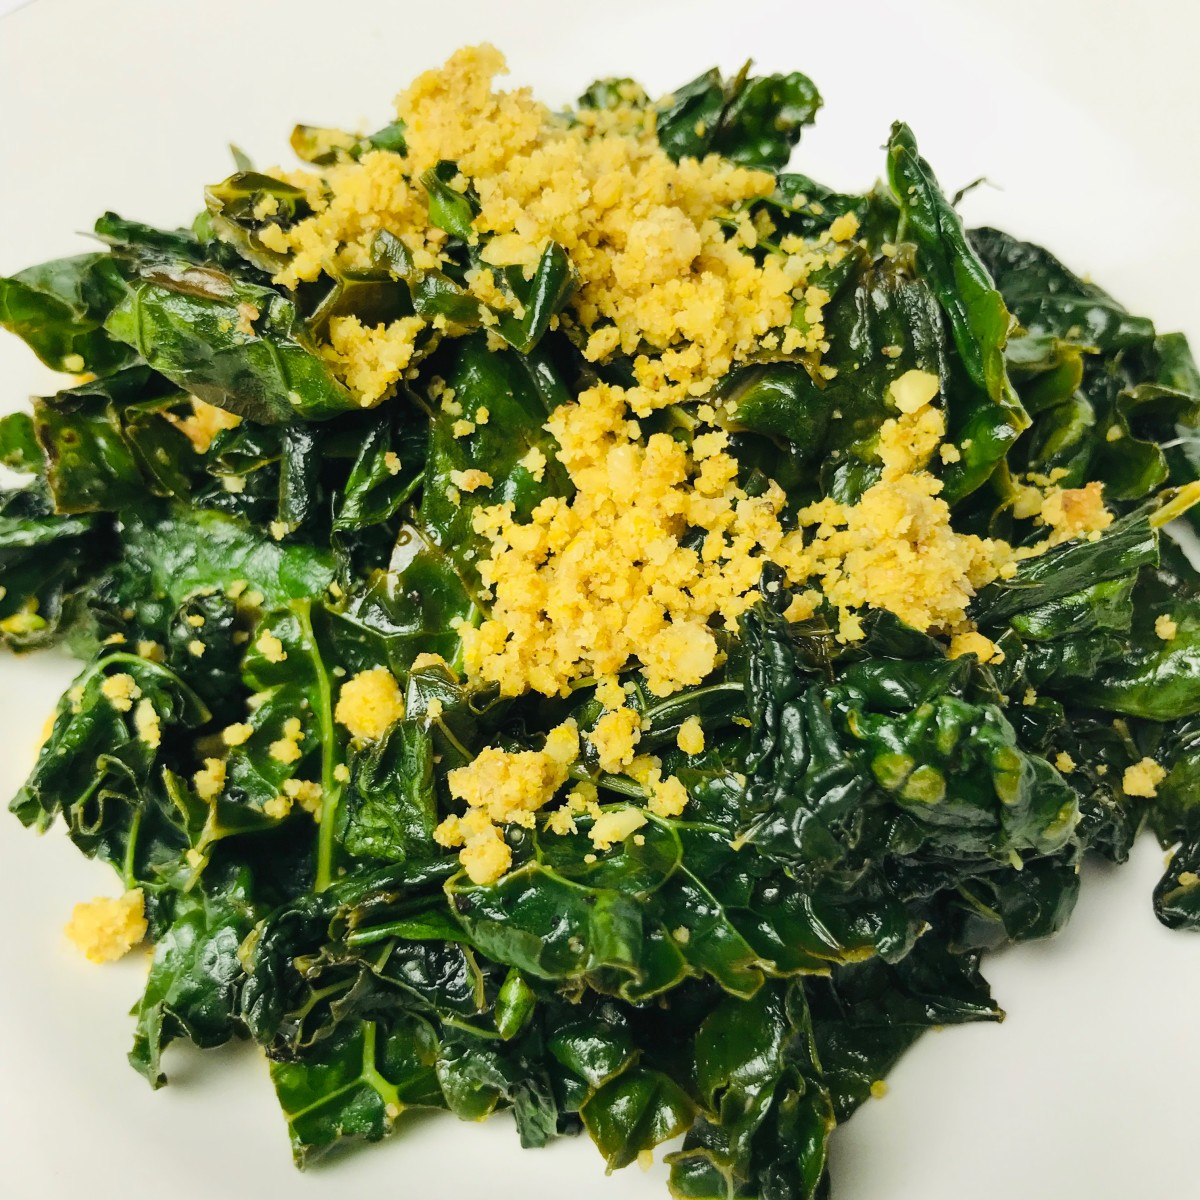 Sauteed kale topped with vegan walnut Parmesan.